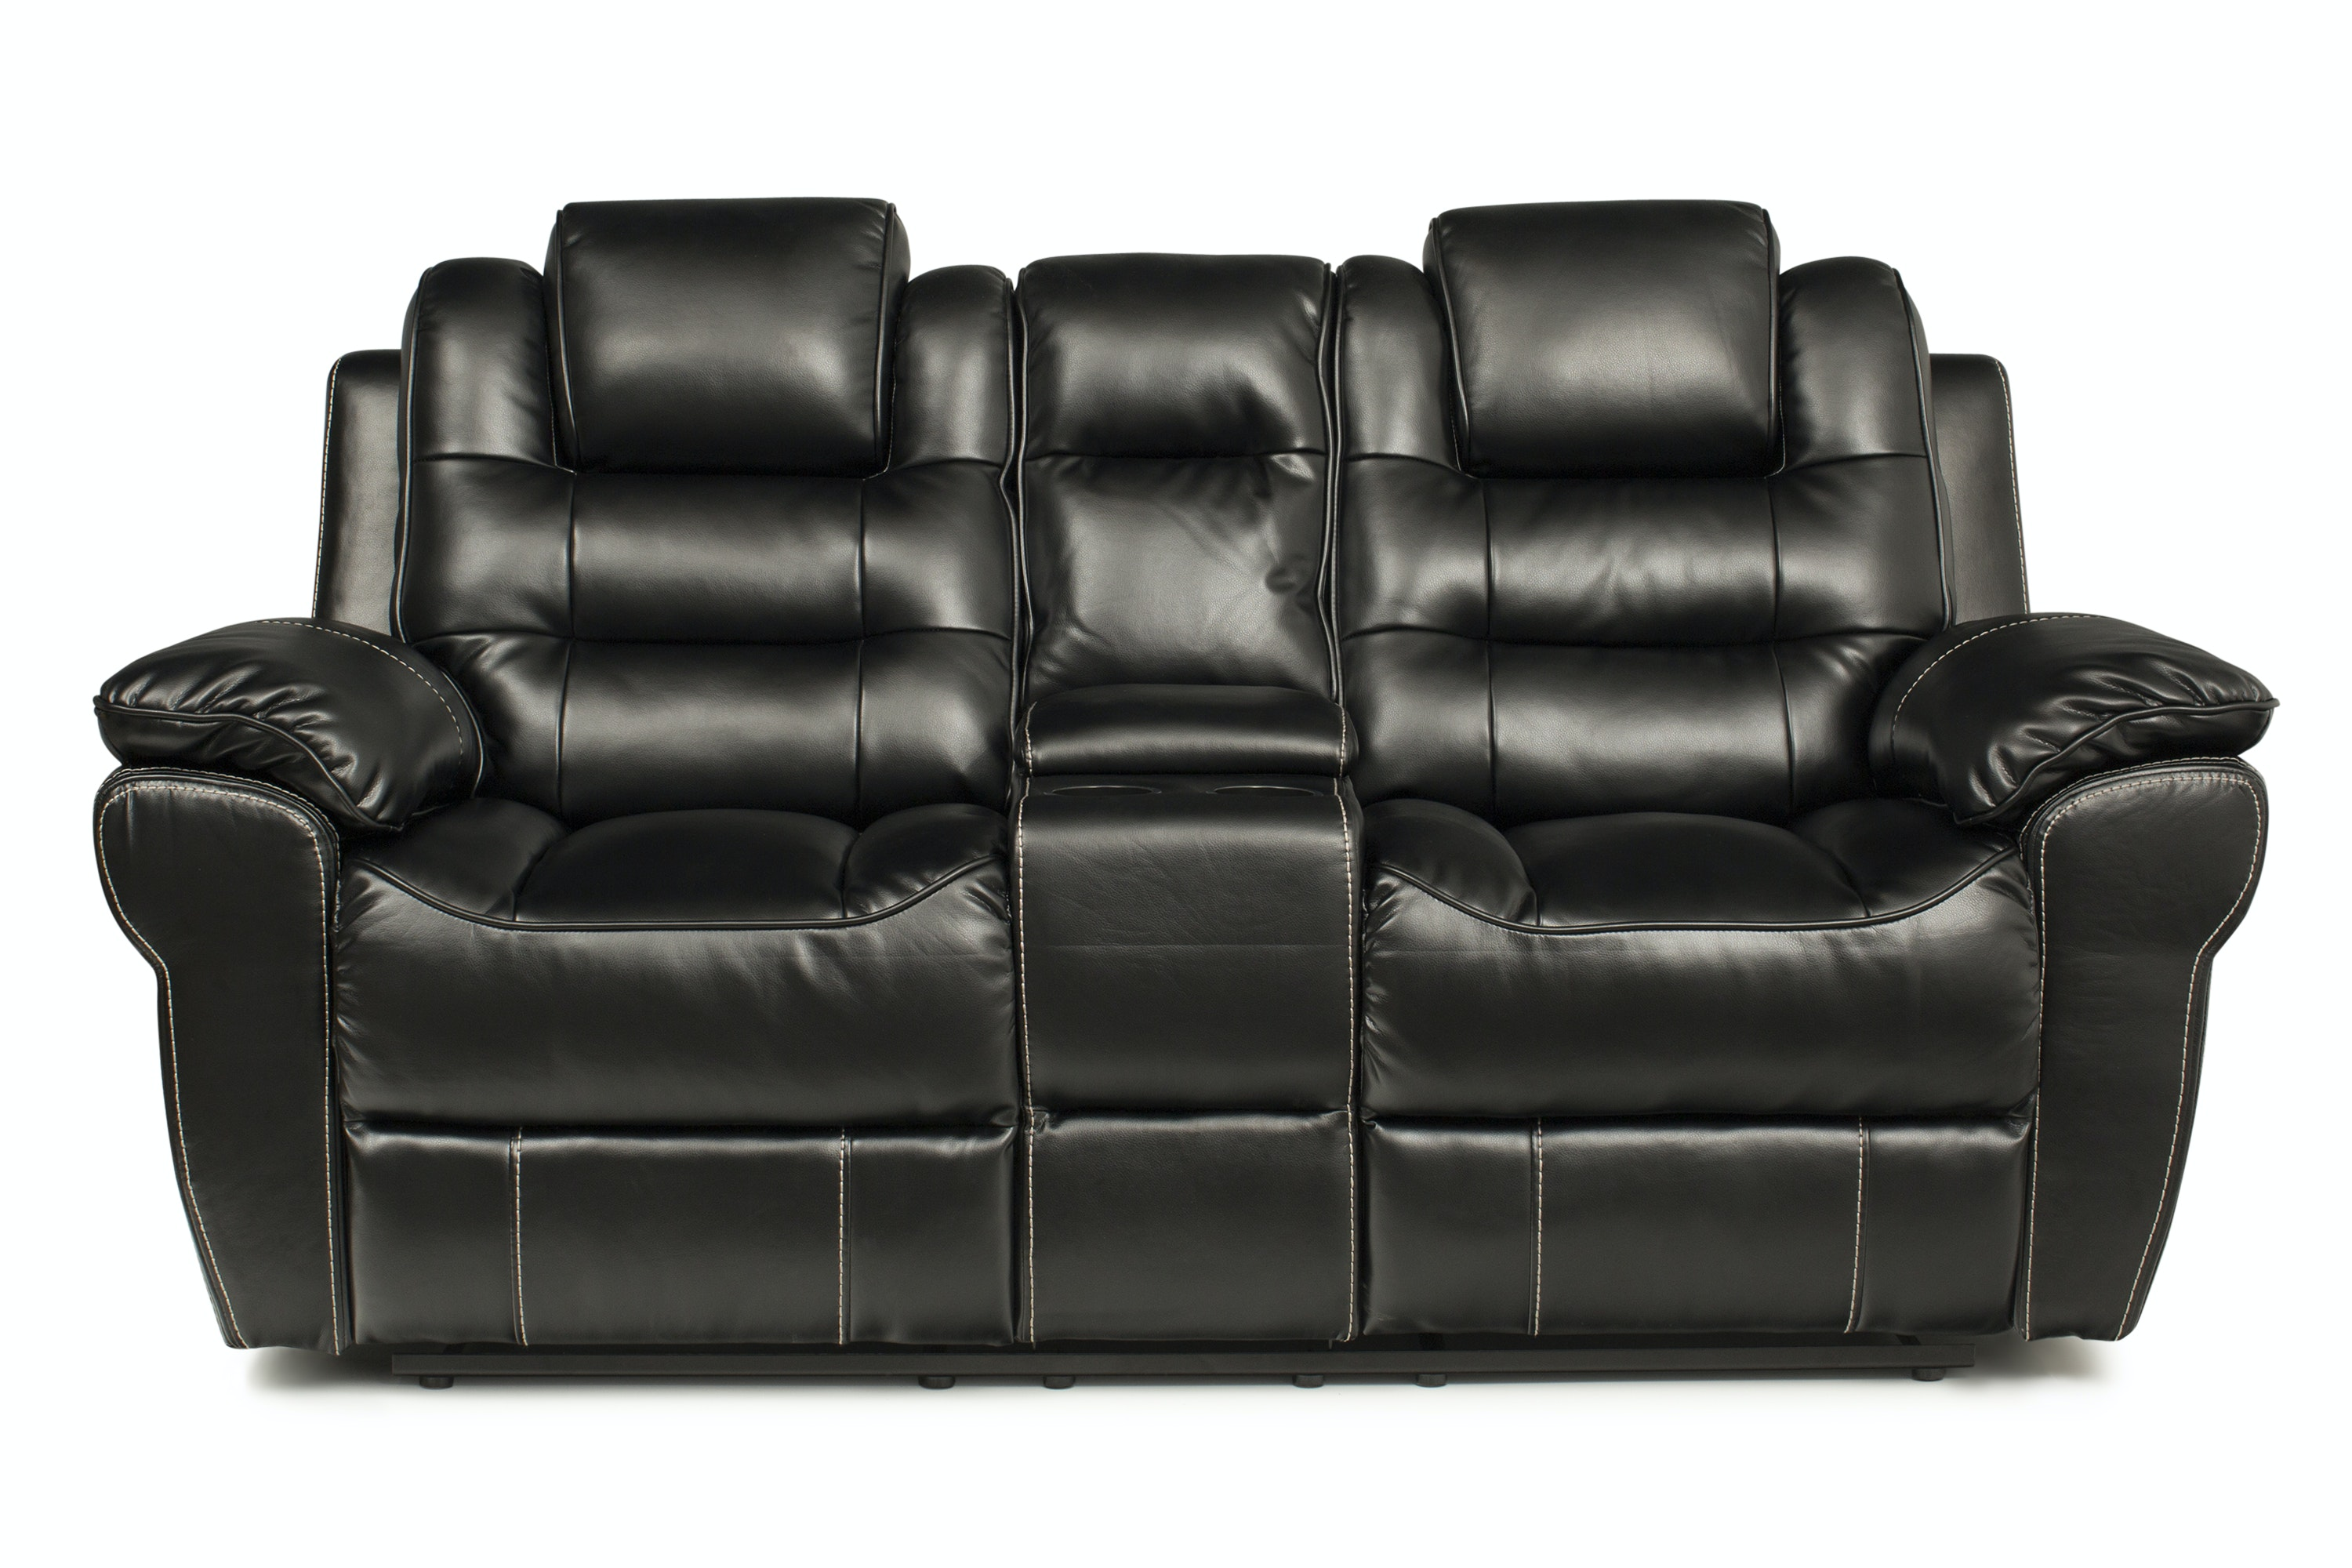 Picture of: Baxter 2 Seater Electric Recliner With Console Black Harvey Norman Ireland